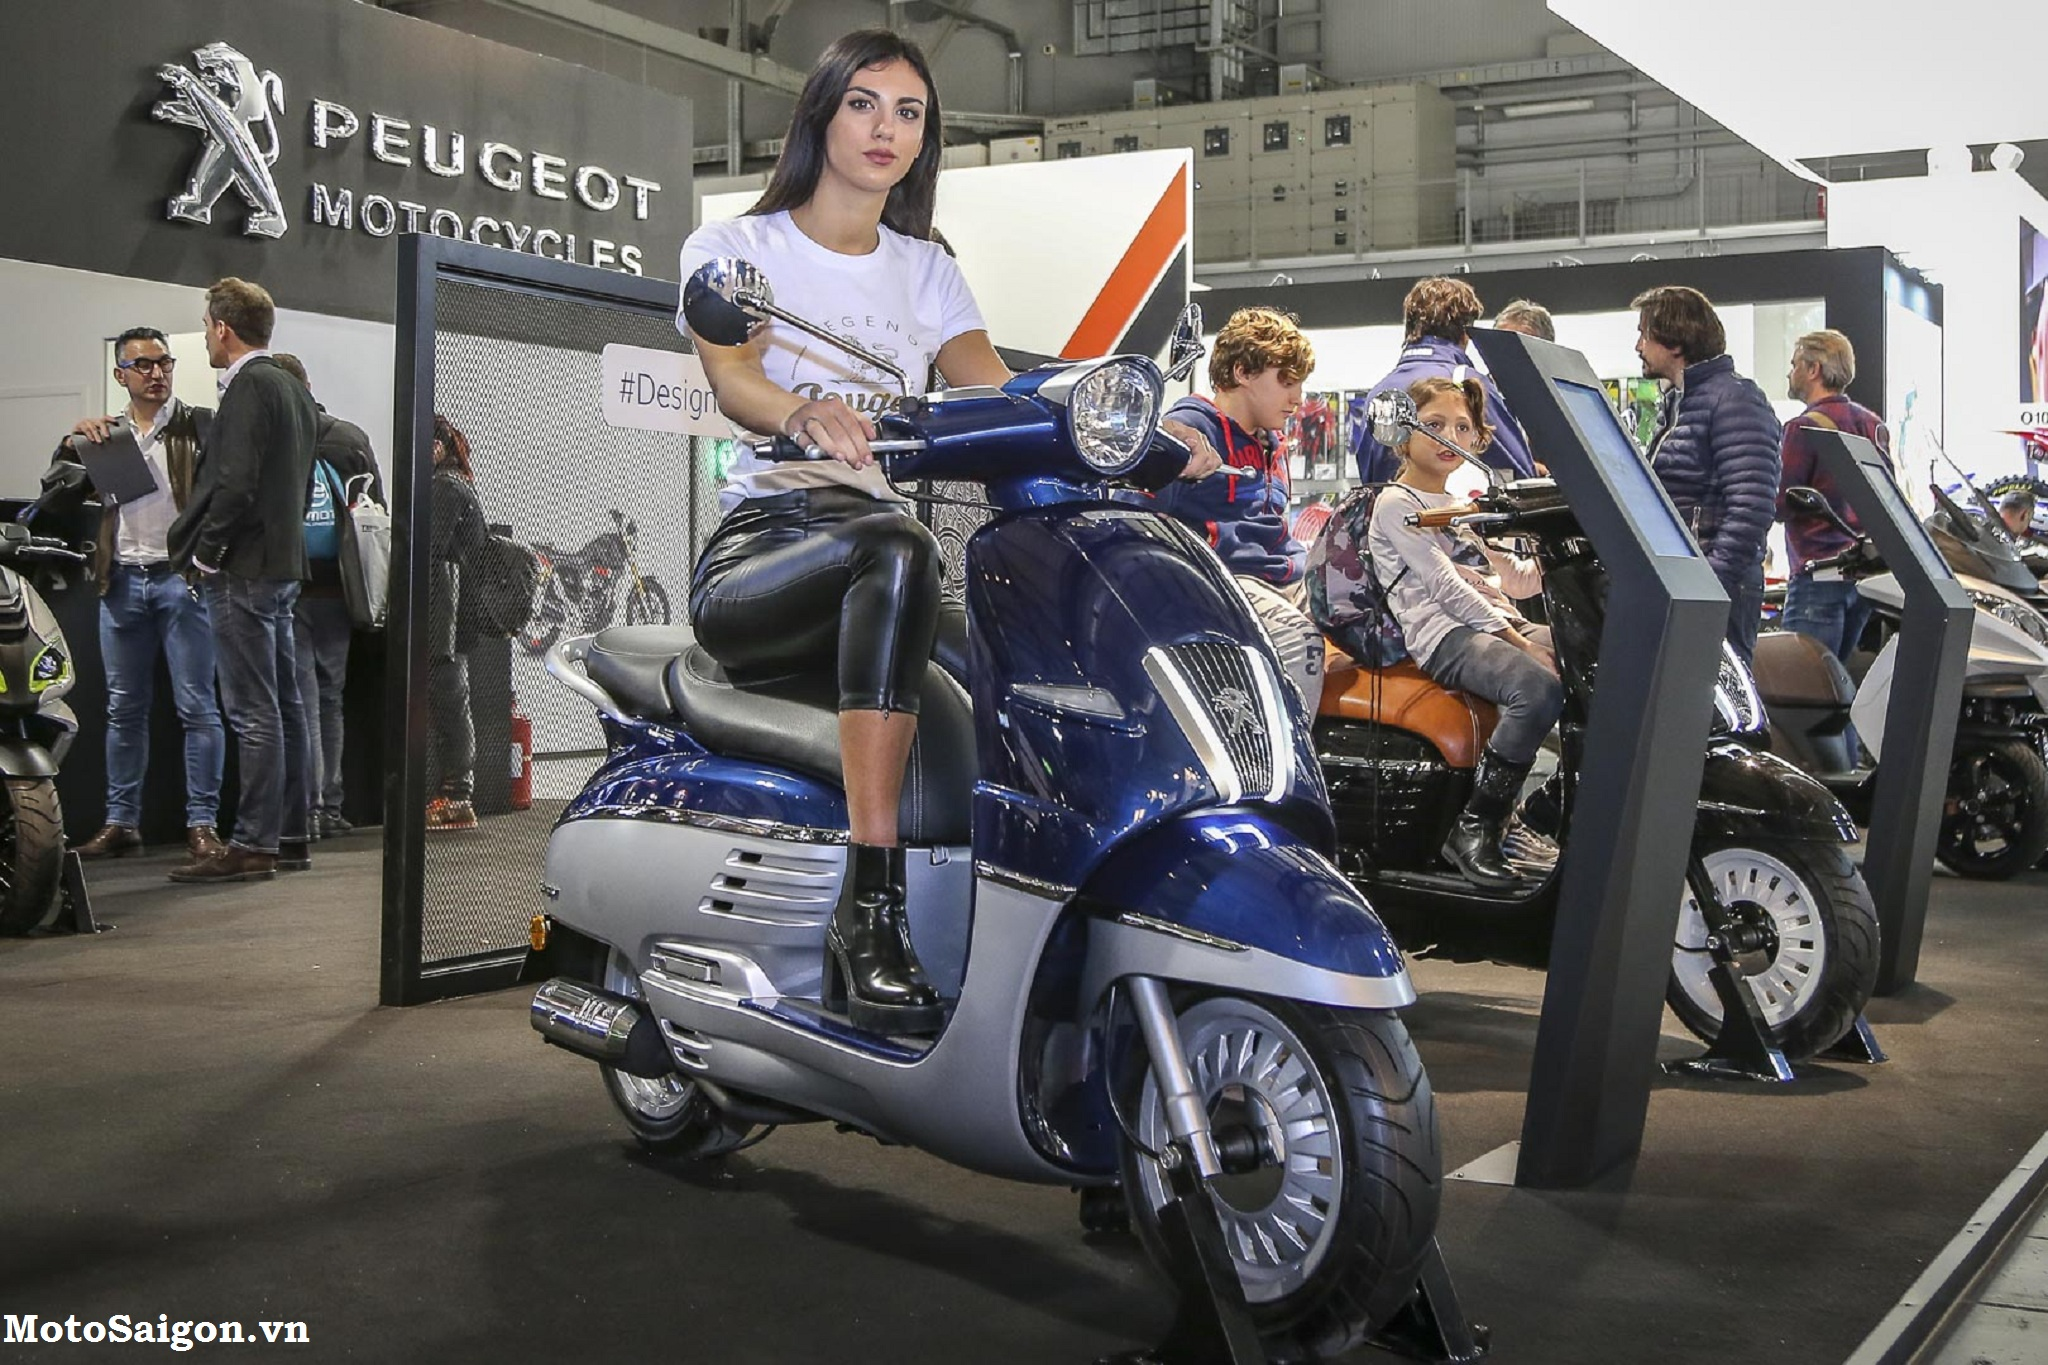 New Peugeot 2020 Models At Eicma 2019 Electrodealpro